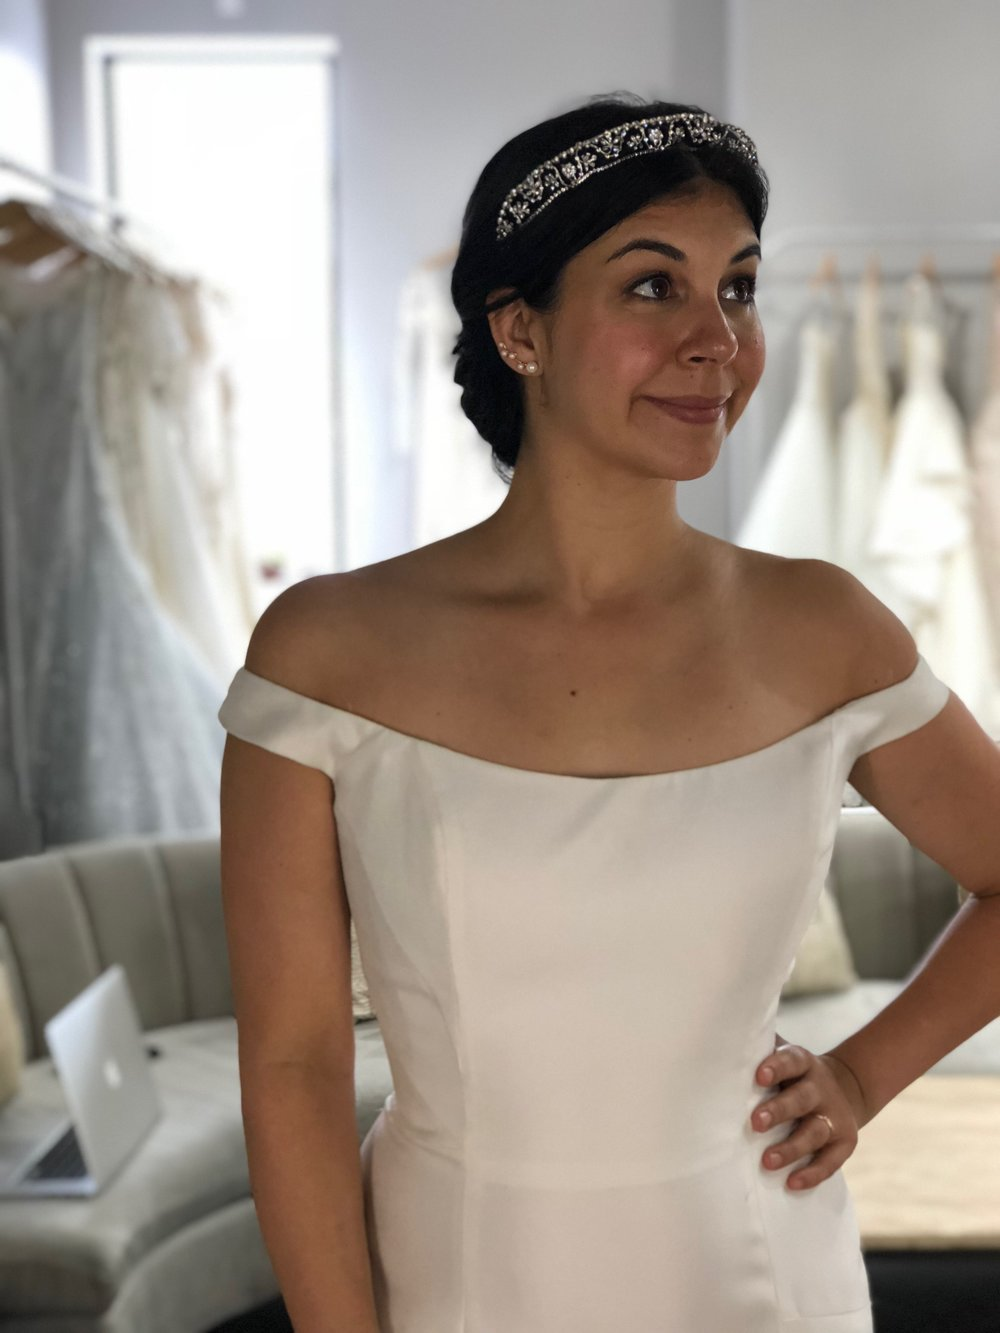 Tiara from The Bridal Finery resembling Meghan Markle's wedding day tiara